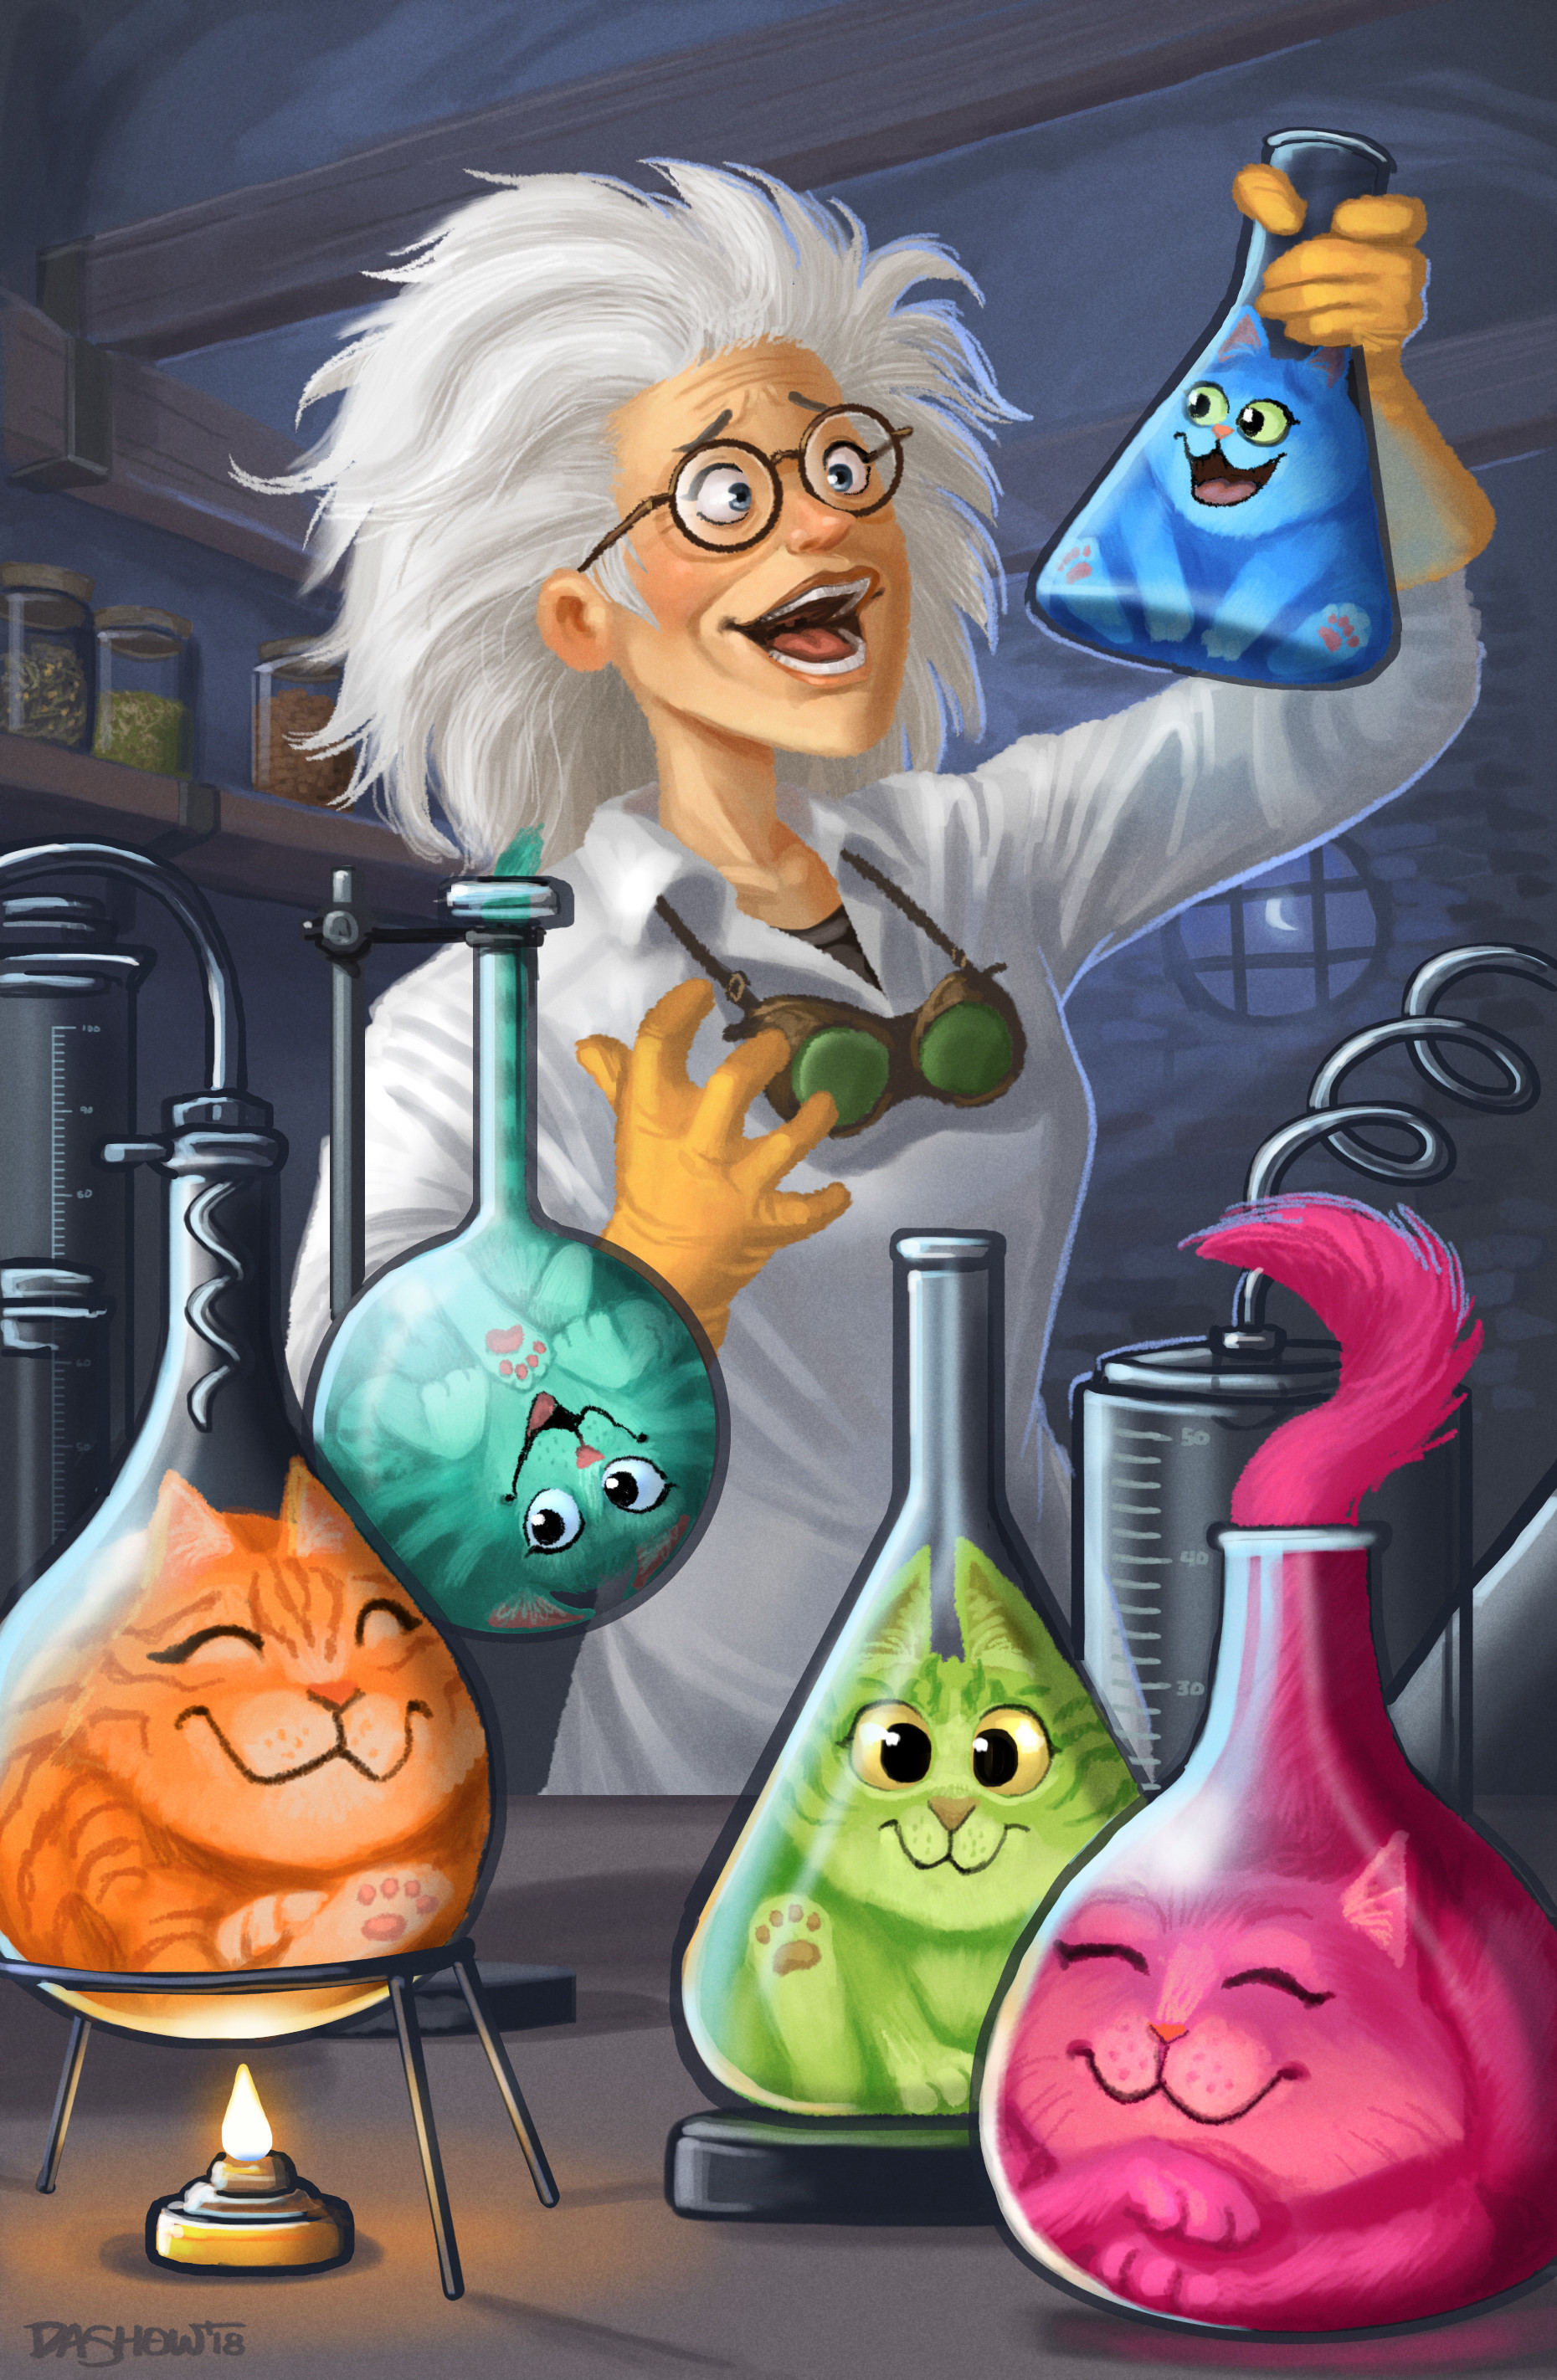 Michael dashow cat scientist 02 final signed